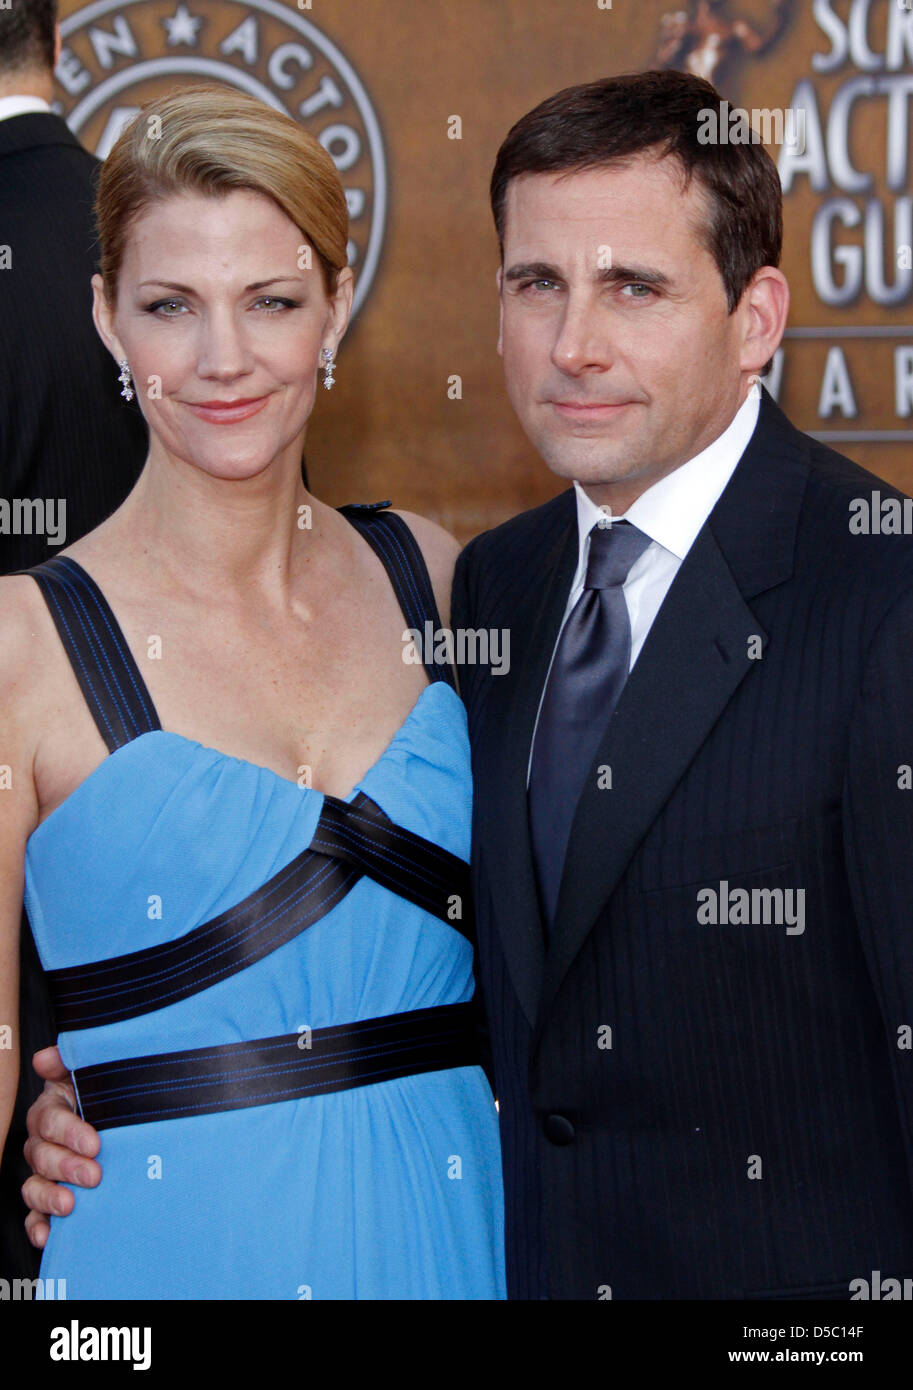 Nancy Carell High Resolution Stock Photography And Images Alamy A brief history of humankind by yuval noah harari, the testaments. https www alamy com stock photo us actor steve carell r and his wife actress nancy carell l attend 54968719 html